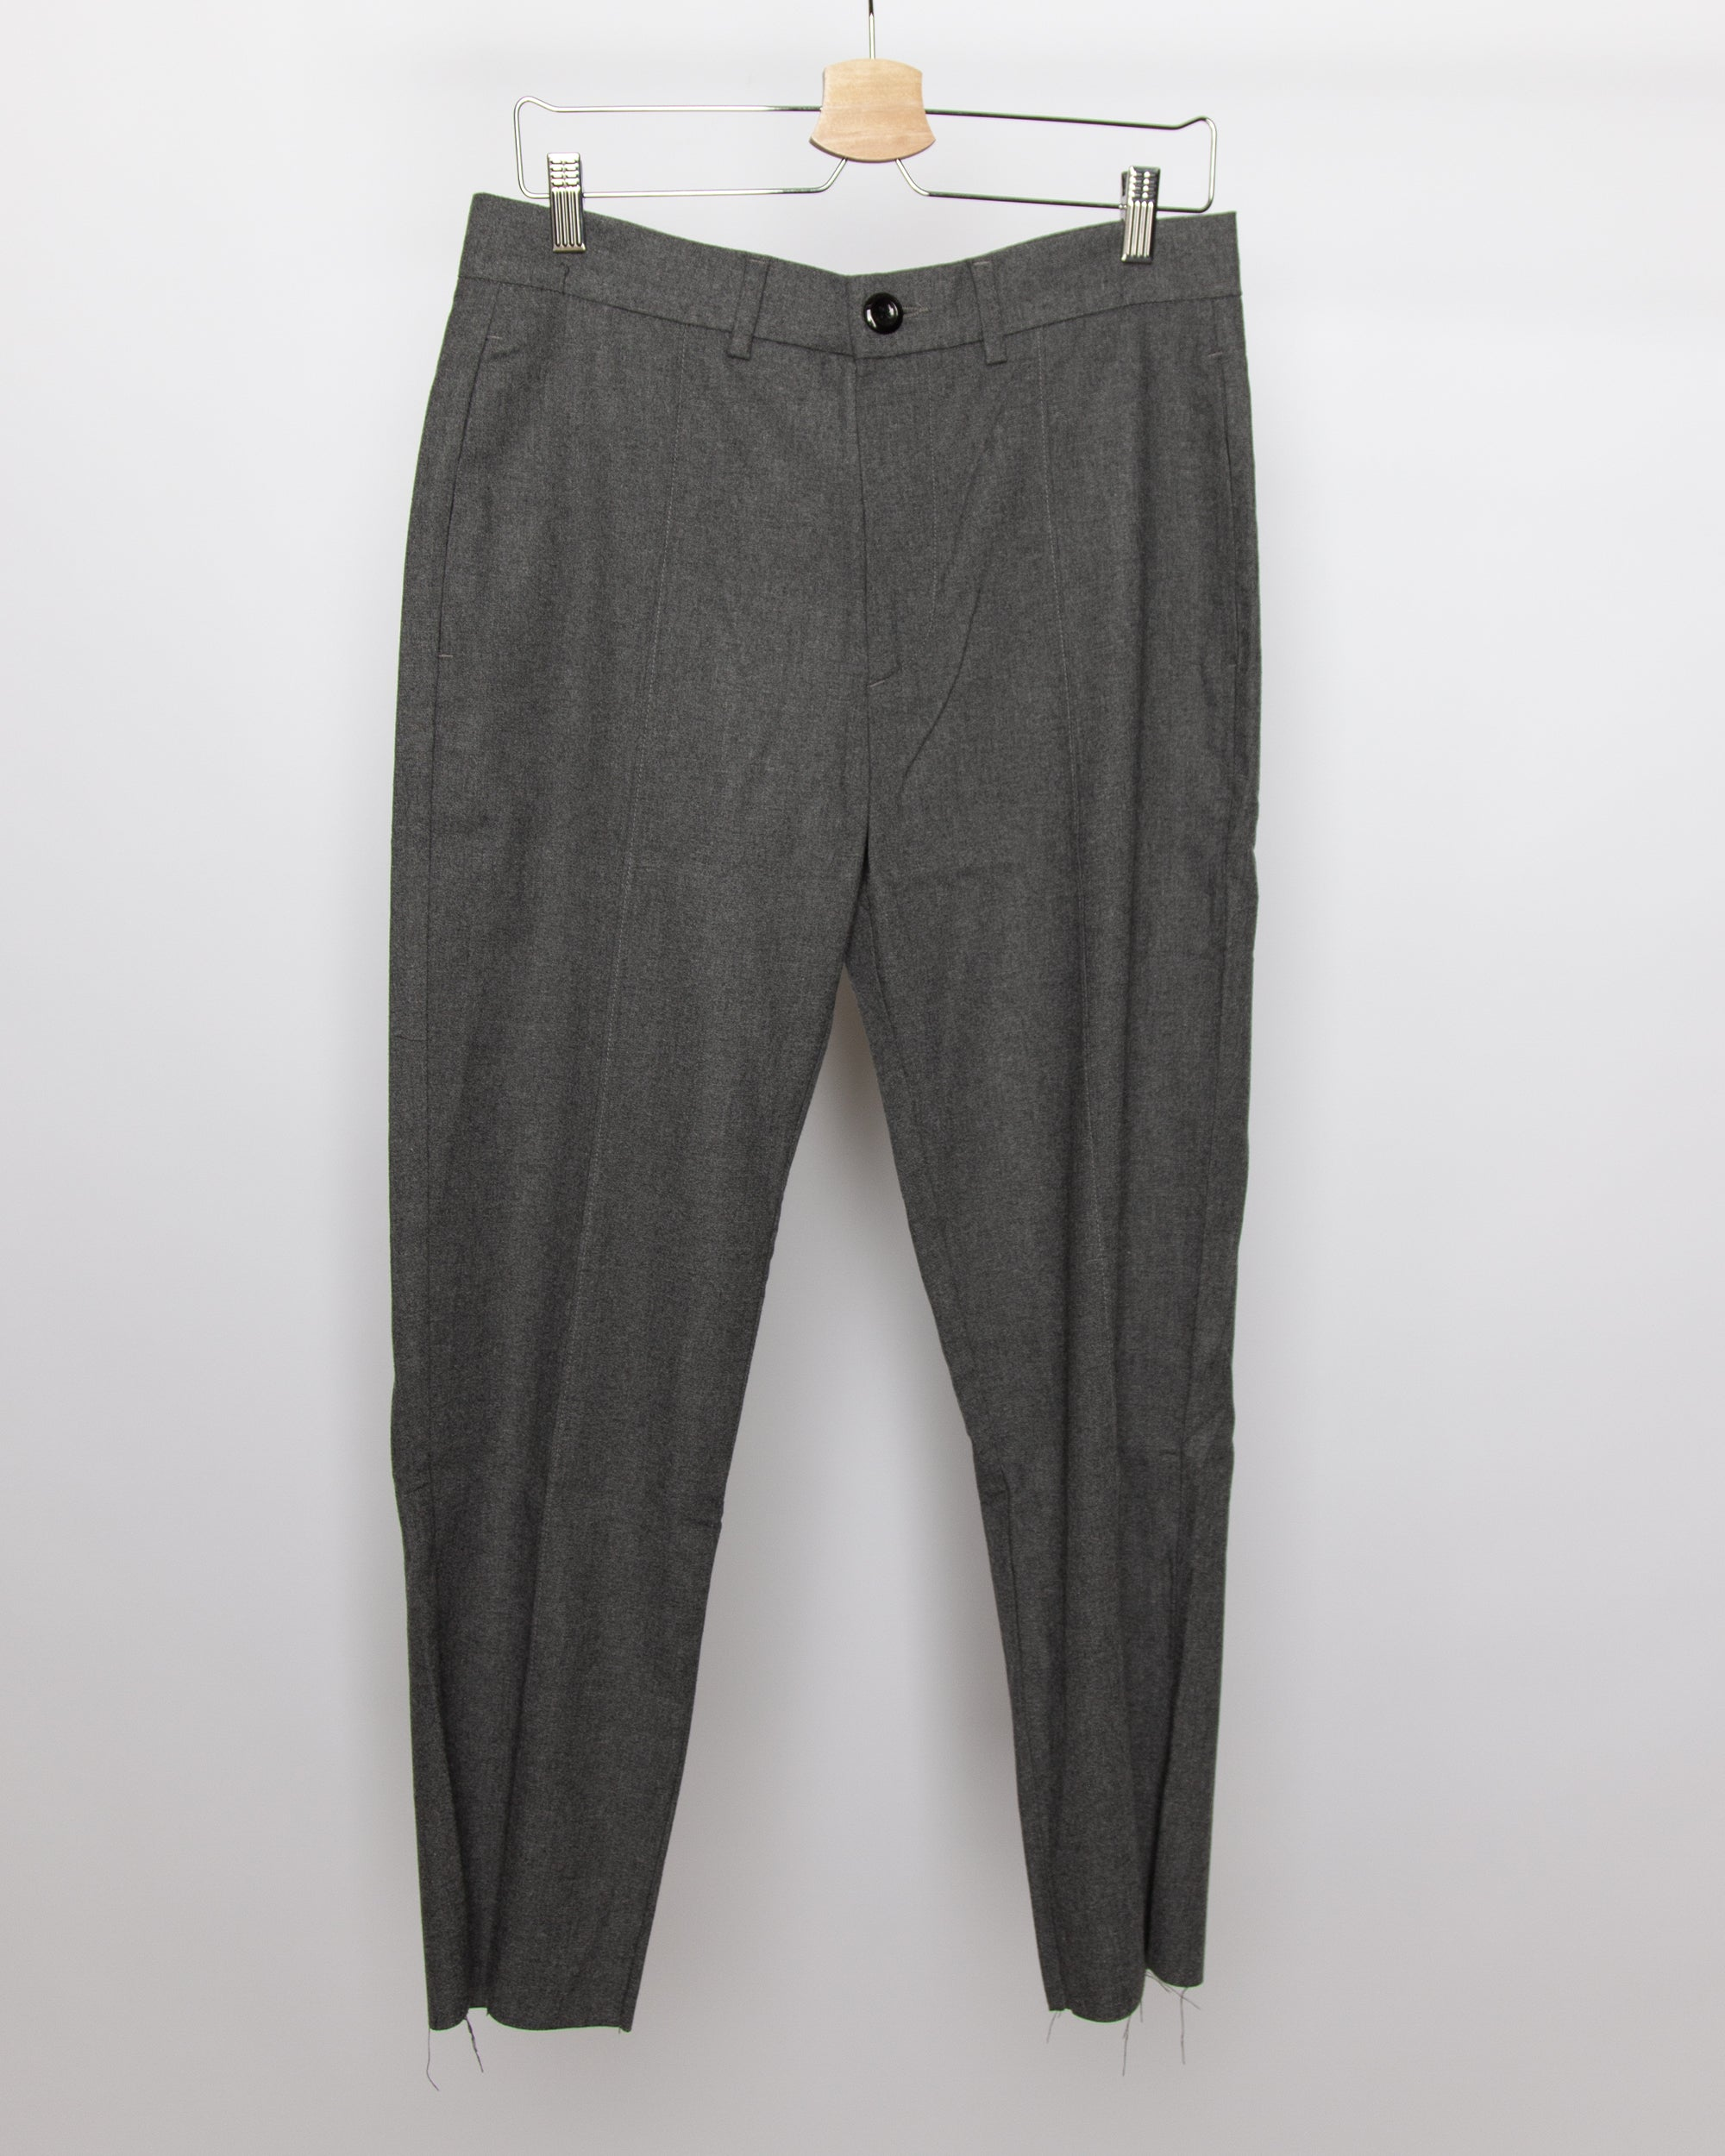 Spoiled Children - Wool Pin Tuck Trouser in Charcoal